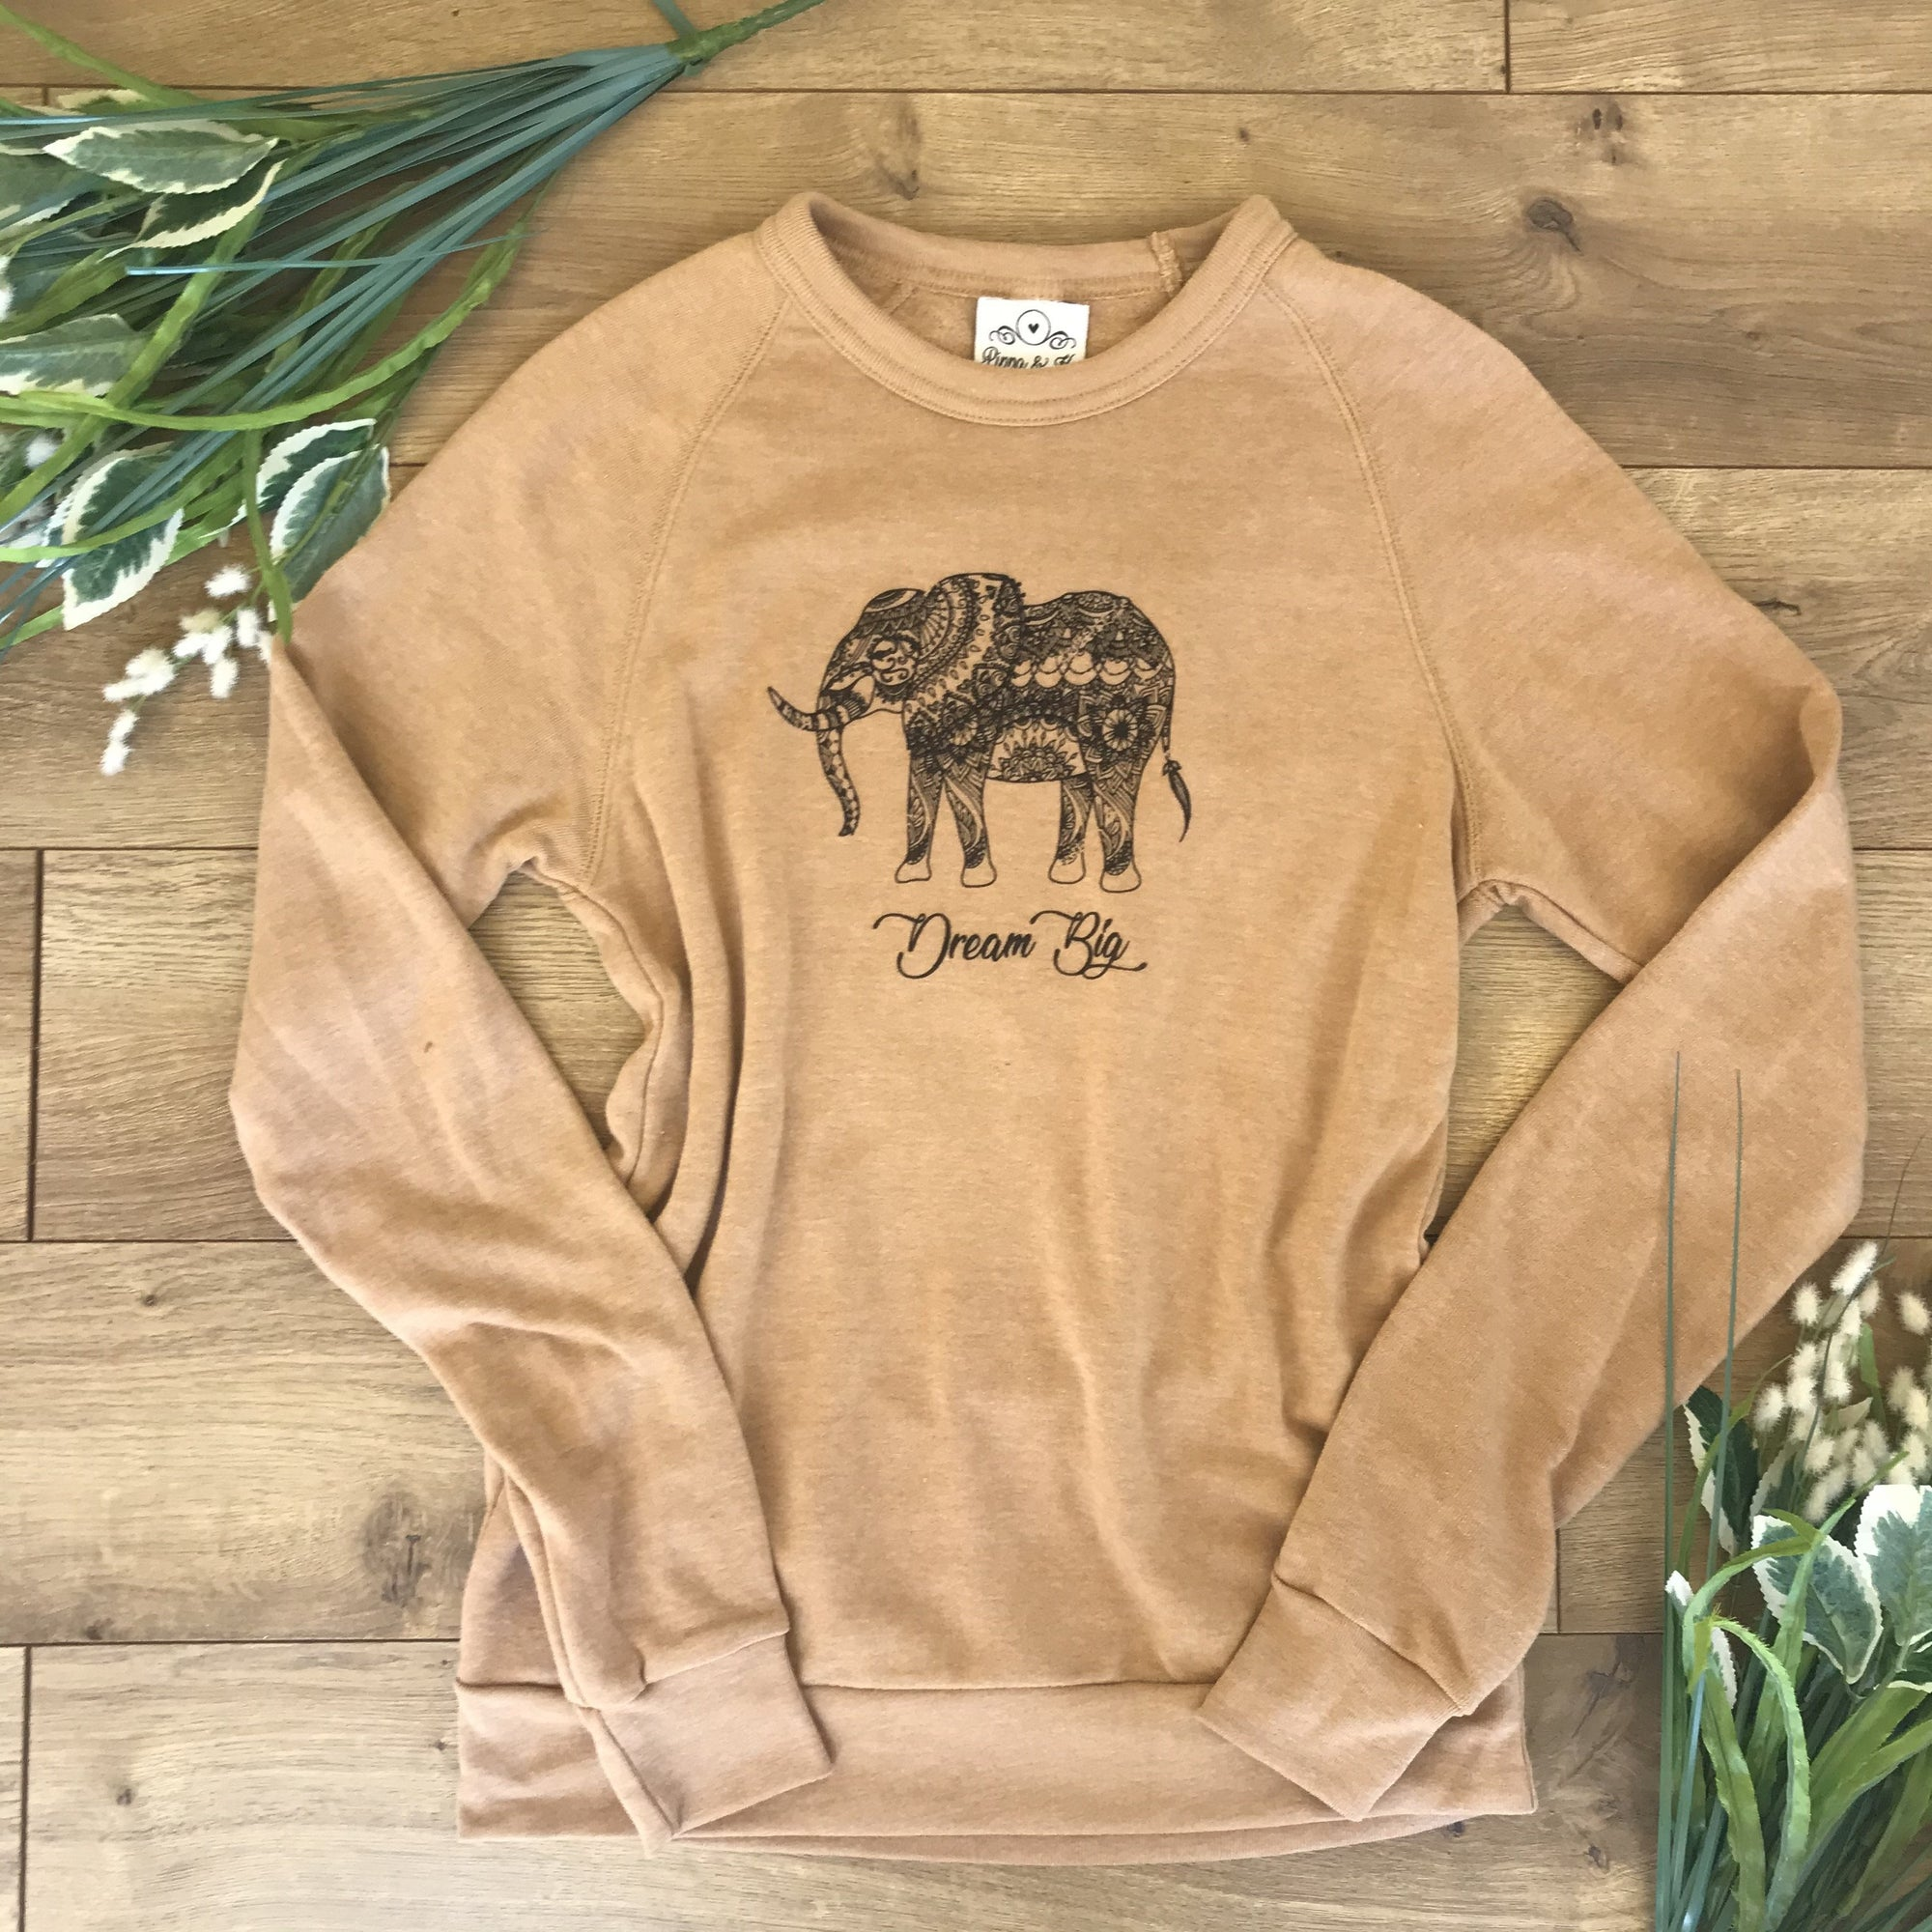 Dream Big Mustard Pullover Sweatshirt - Sweatshirt